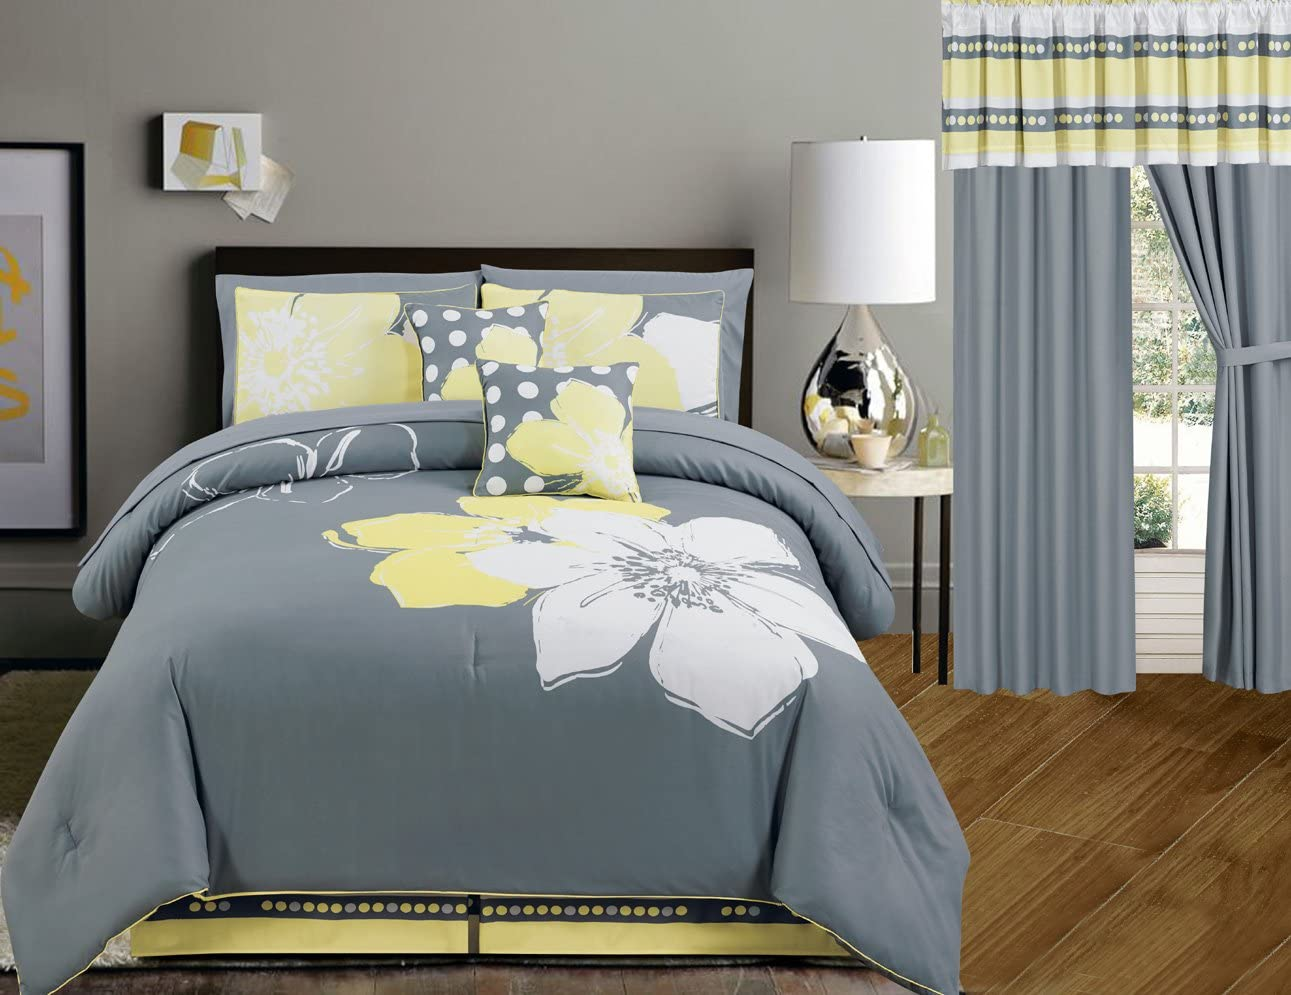 Yellow Grey White Floral Bed-in-a-Bag Queen Size Bedding + Sheets + Accent  Pillows Comforter Set